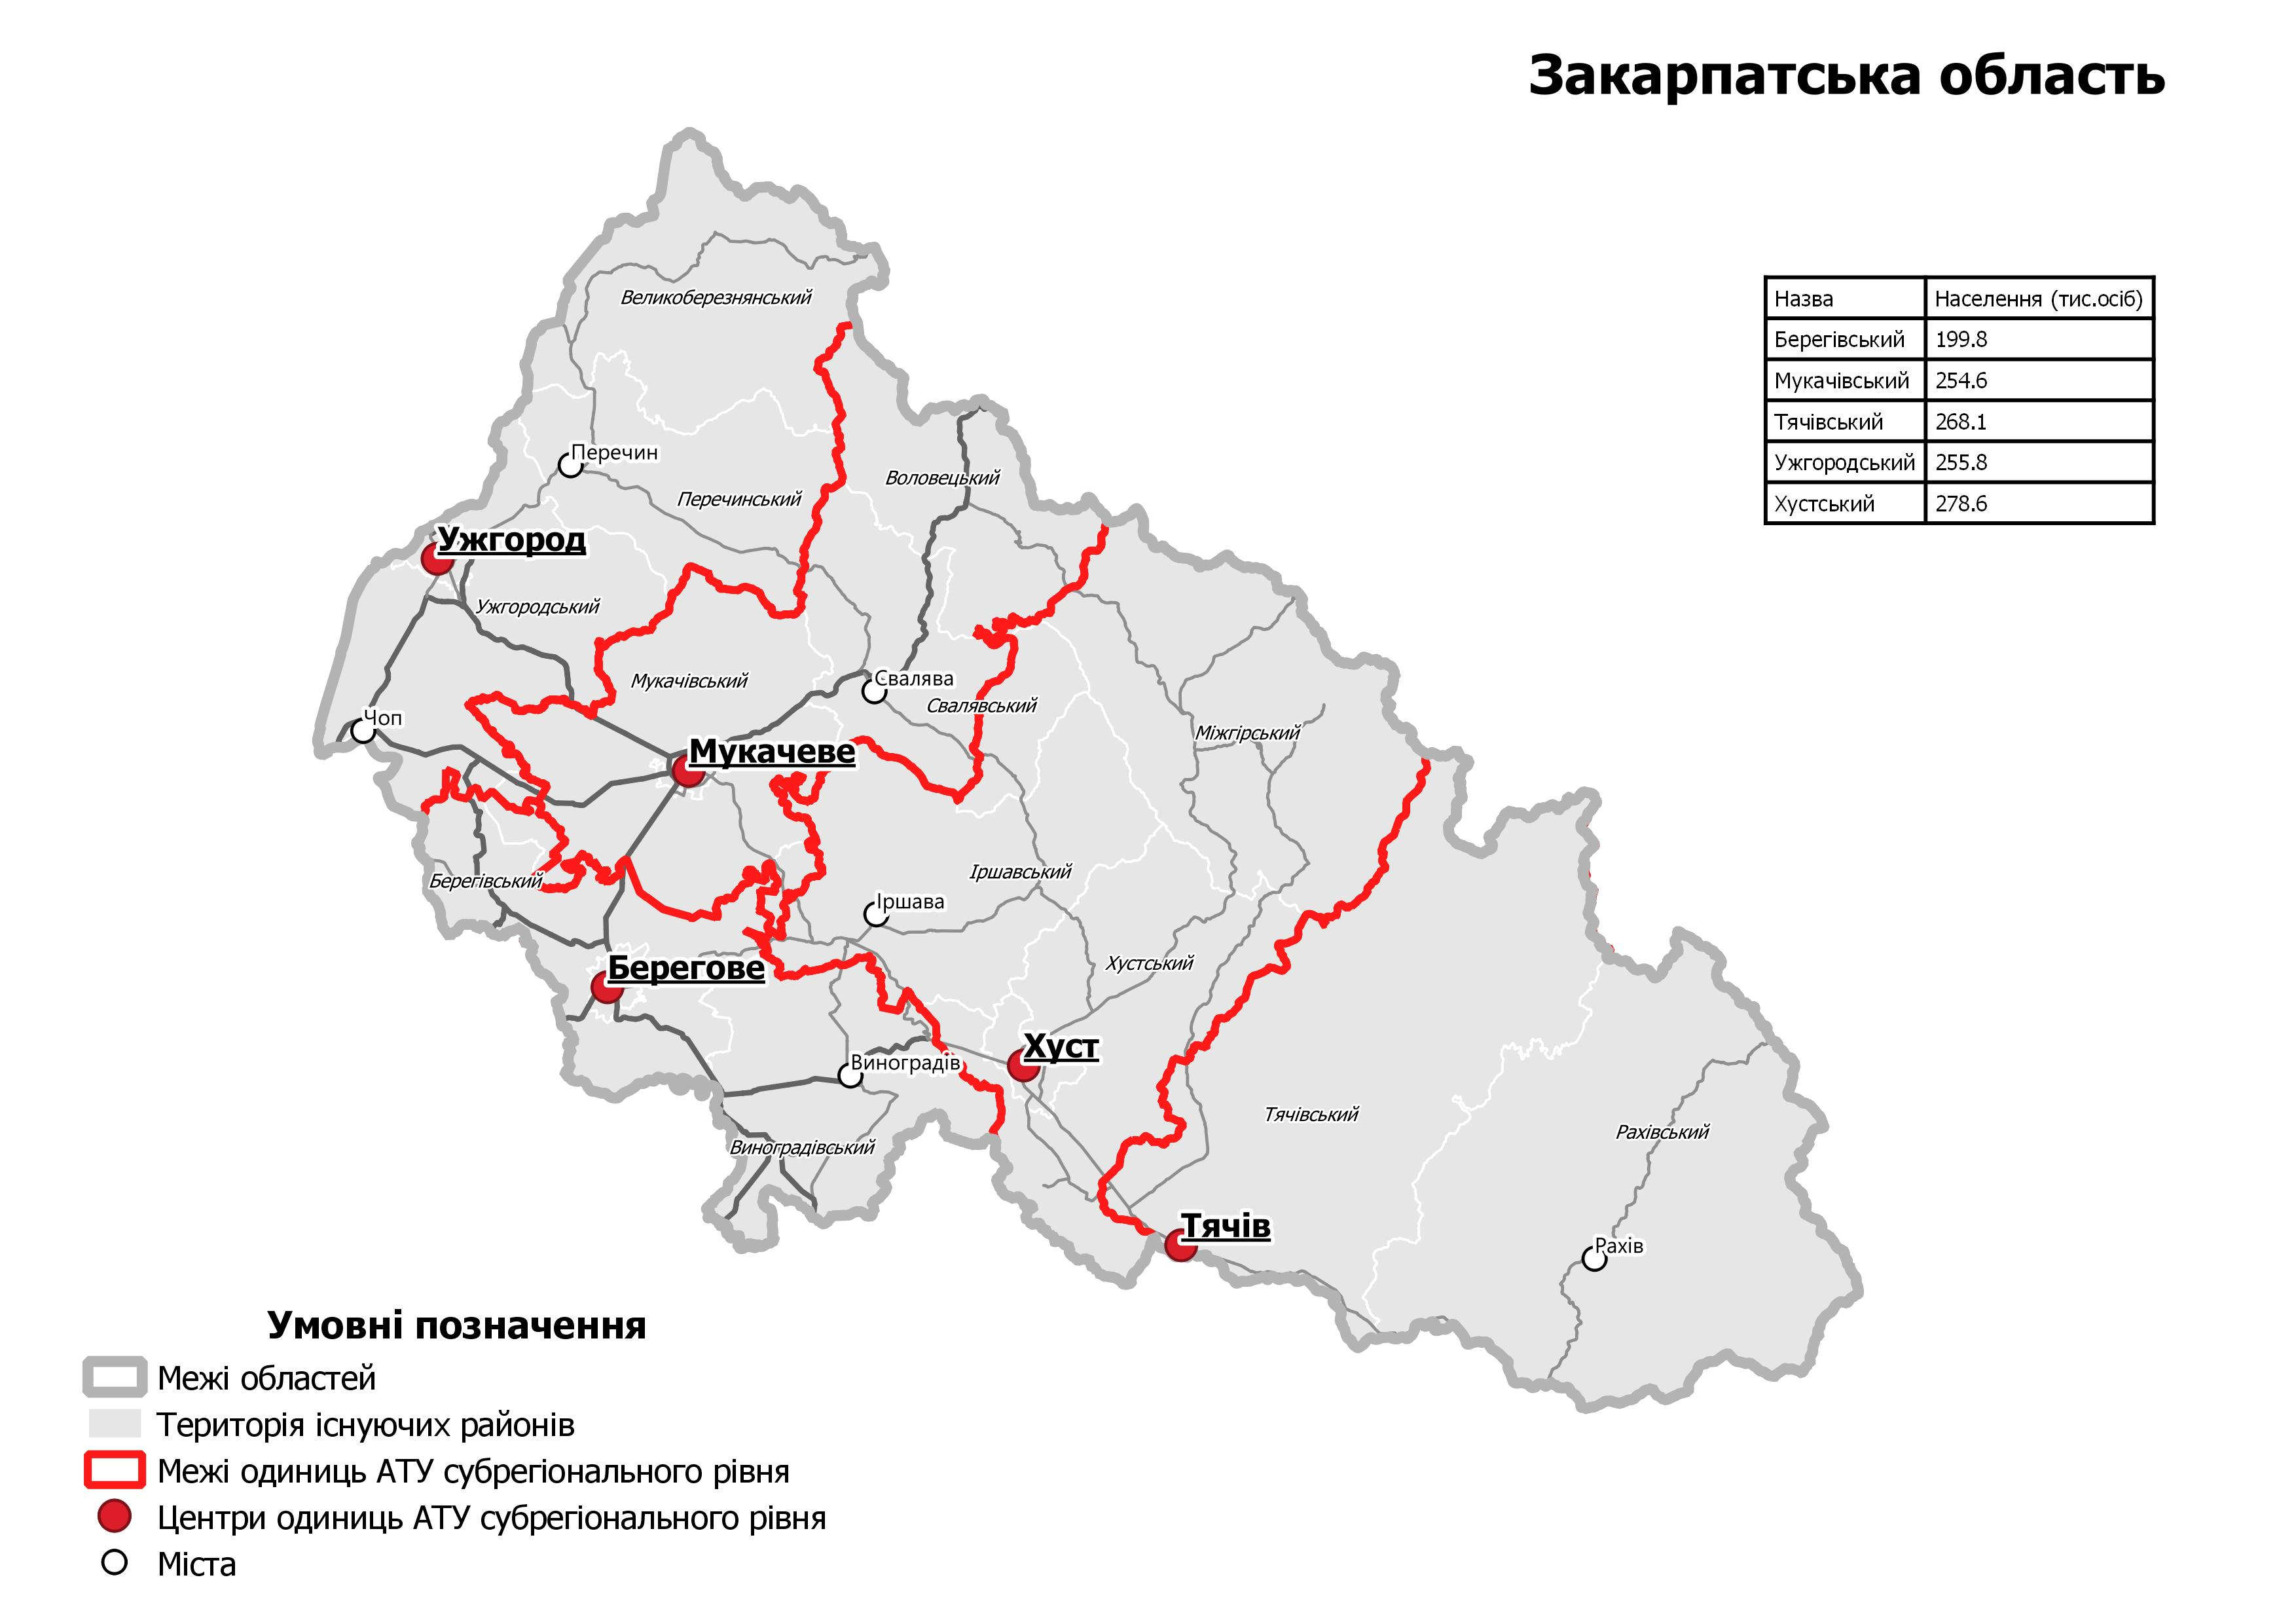 The MinRegion has publicized drafts of the future rayons of Ukraine. Changes are still possible